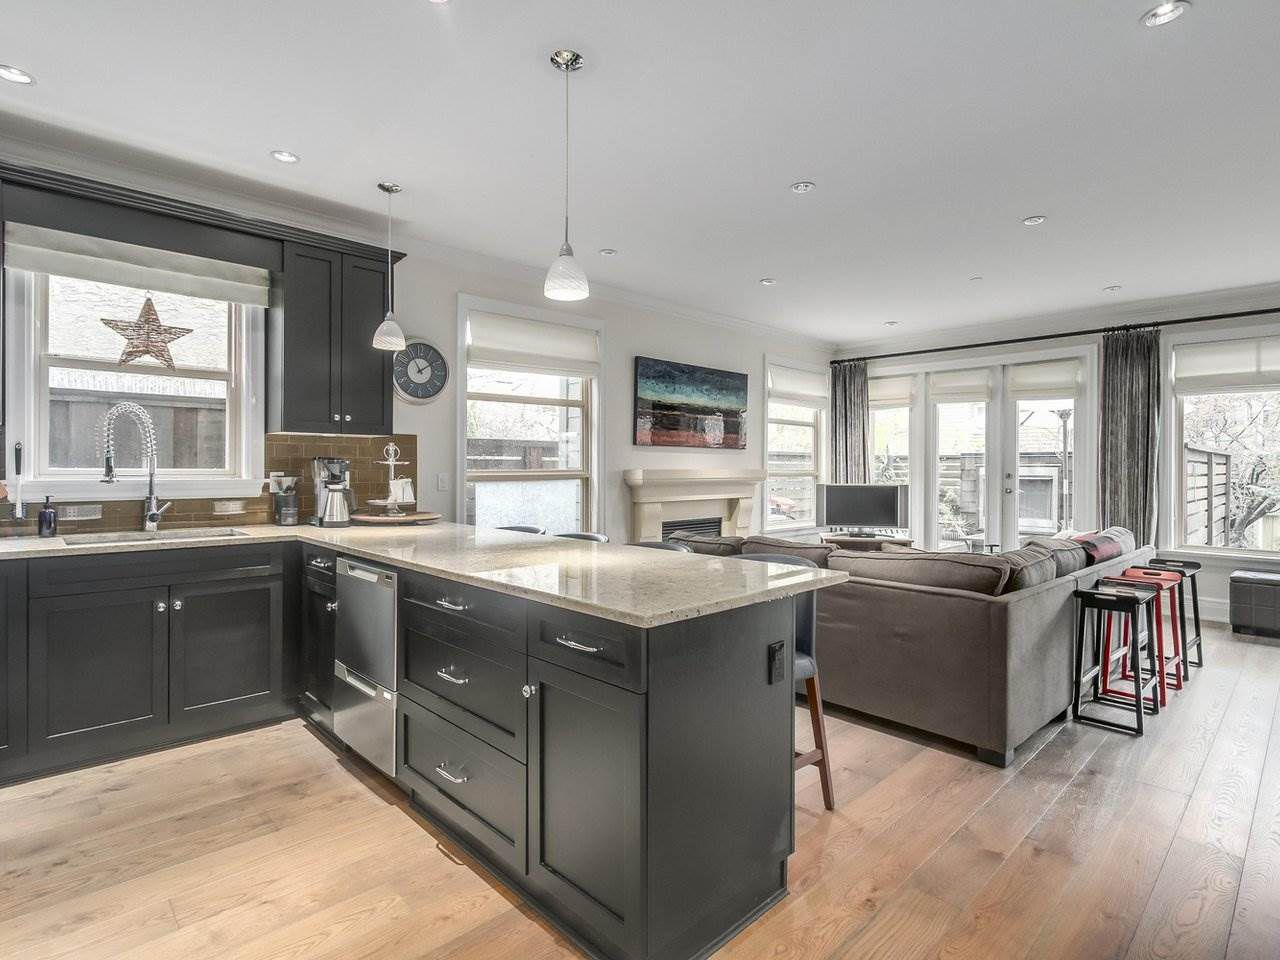 """Photo 6: Photos: 4 249 W 16TH Street in North Vancouver: Central Lonsdale House 1/2 Duplex for sale in """"THE WEST"""" : MLS®# R2262955"""